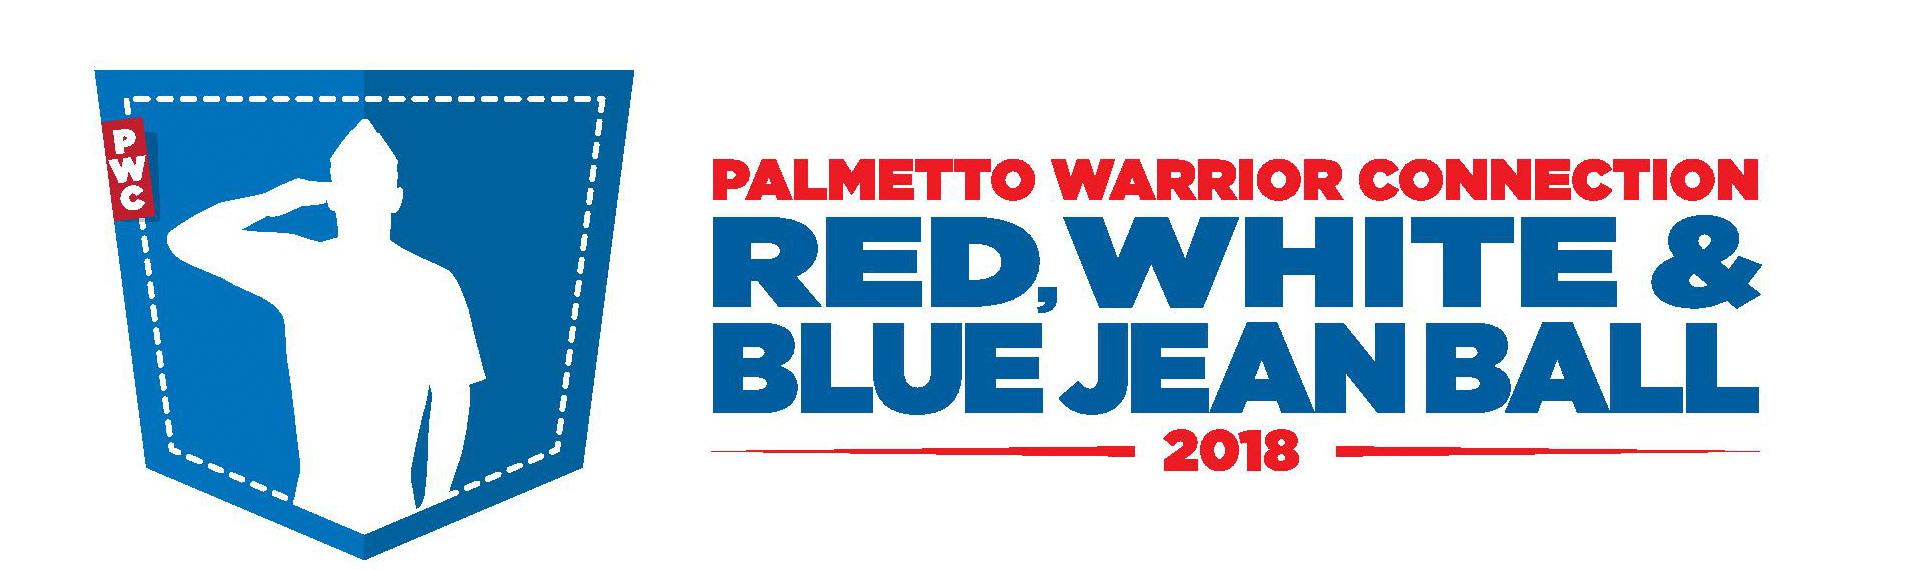 Red, White & Blue Jean Ball logo